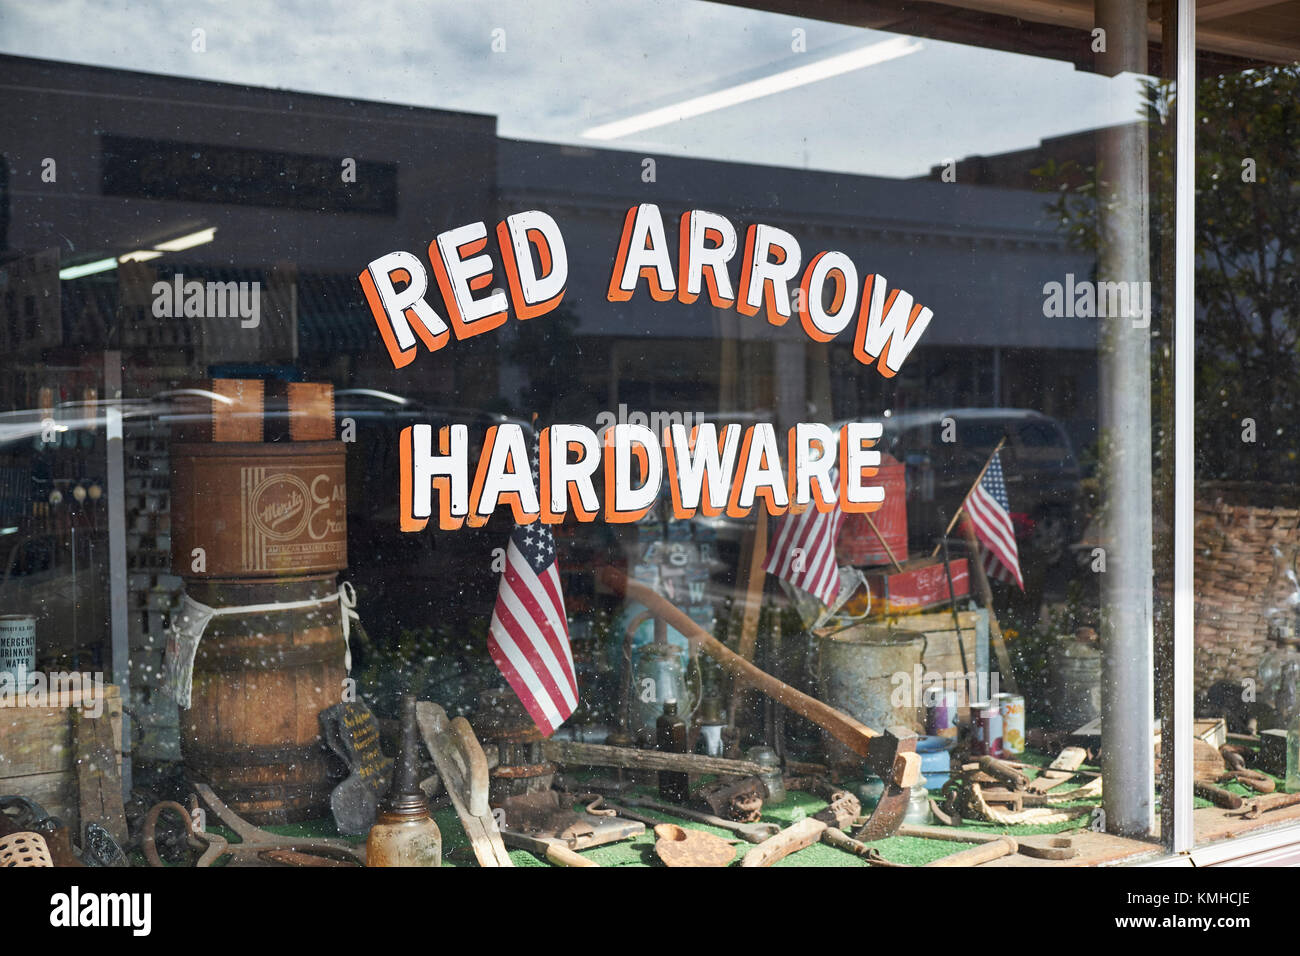 Vintage style hardware store window in small rural town in the southern USA, Prattville Alabama USA. - Stock Image